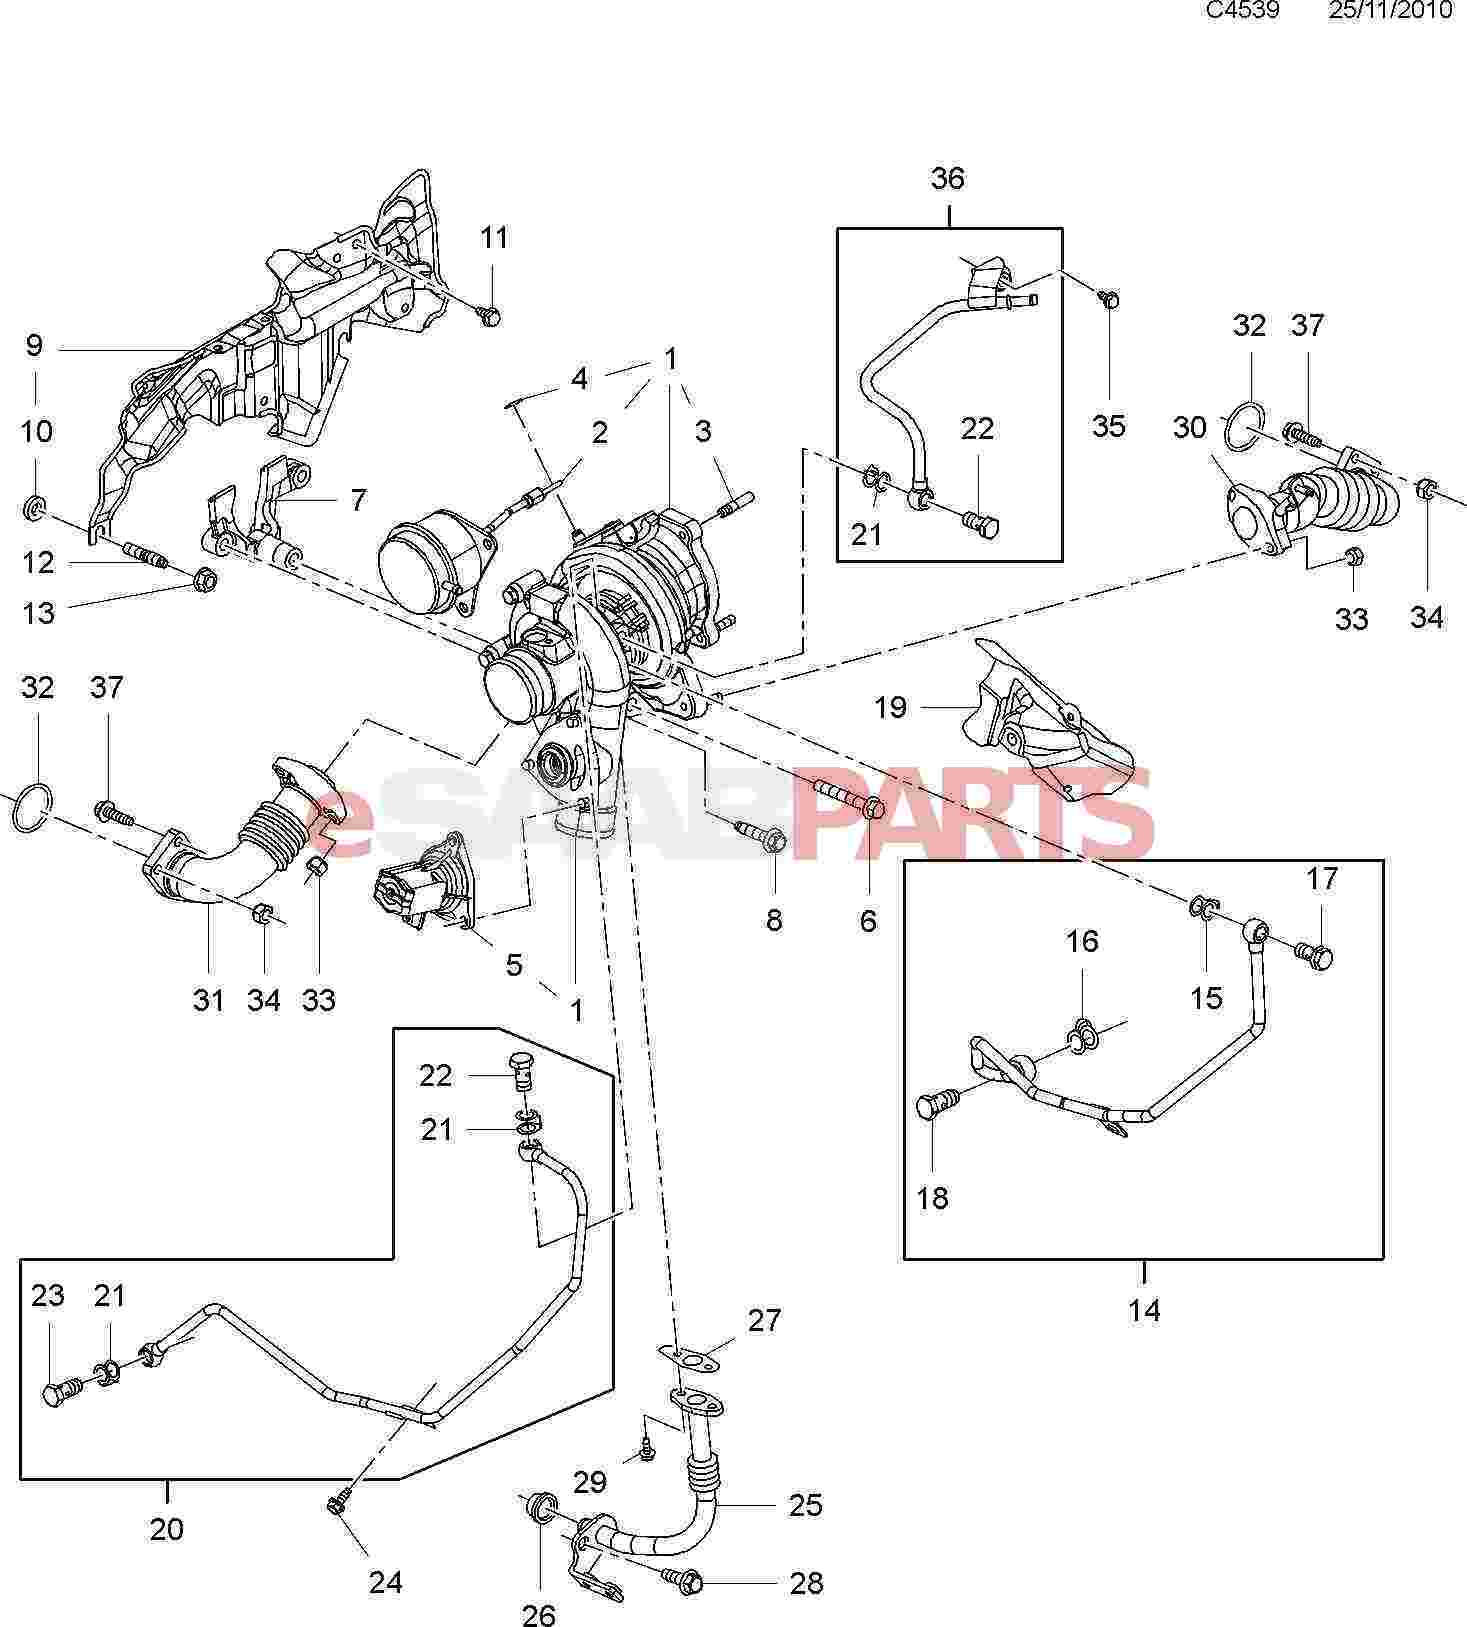 saab 9 3 engine diagram dot statistics who make 5 parts auto catalog and